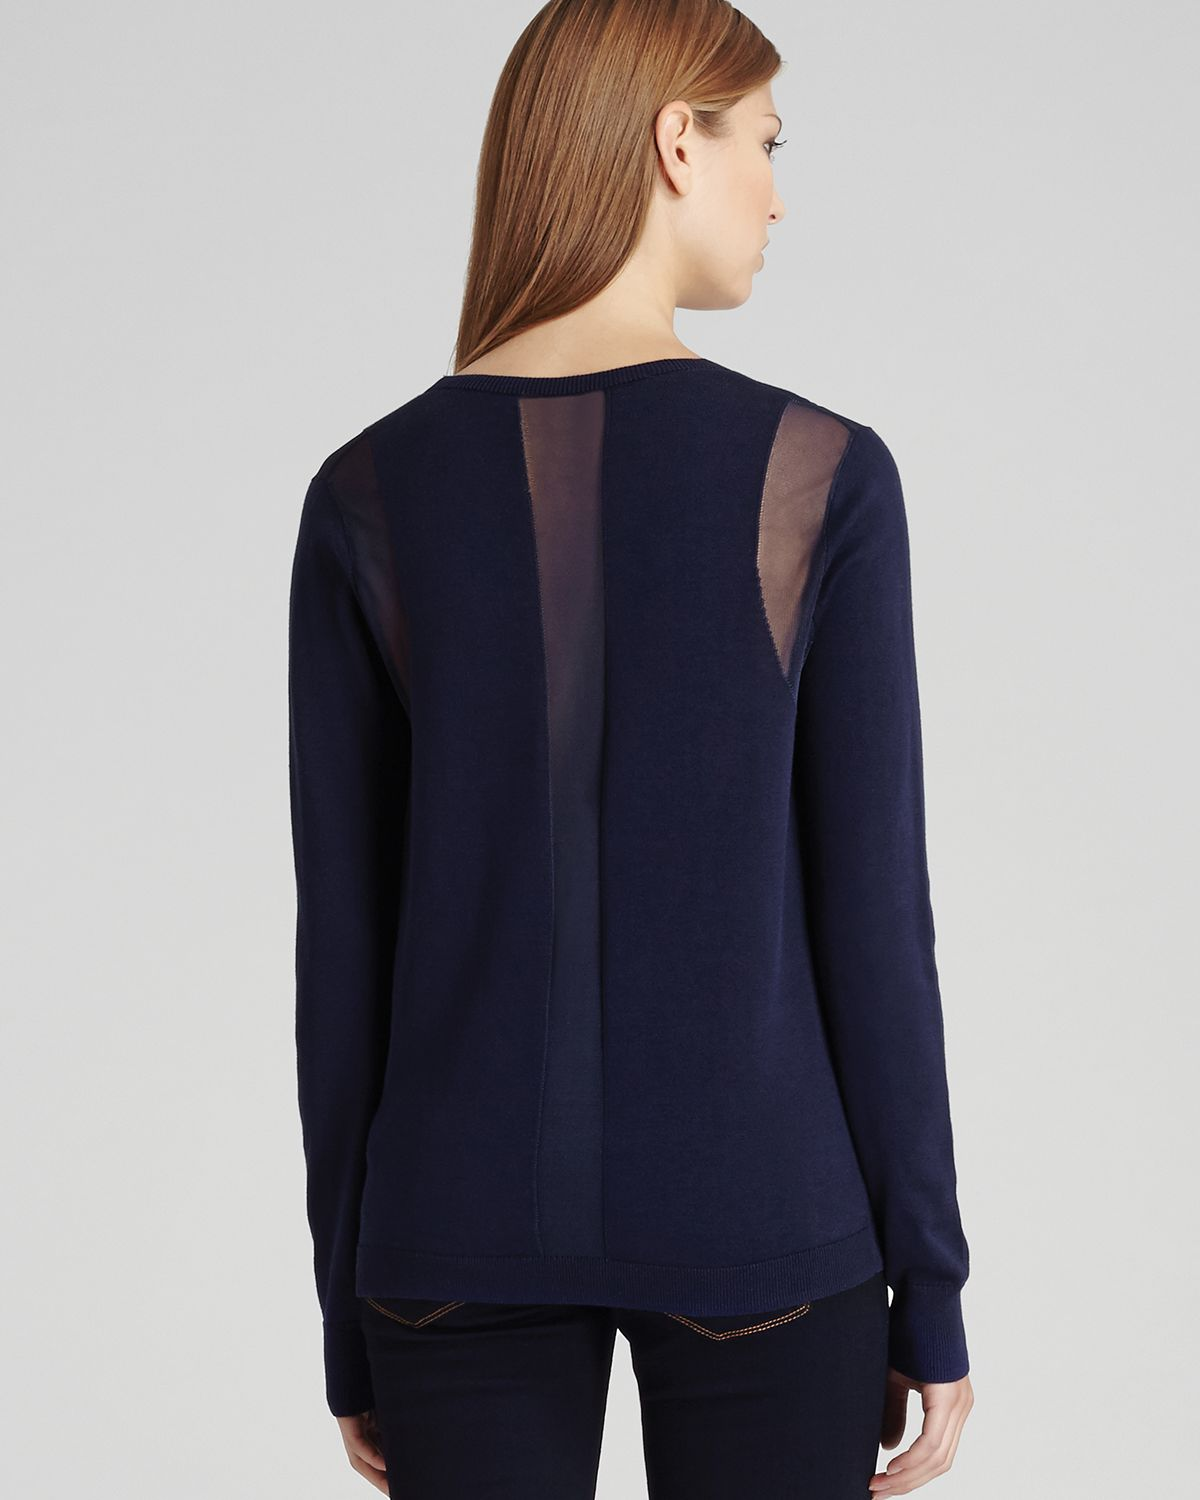 Reiss Cardigan Bebbington Sheer Detail in Blue | Lyst